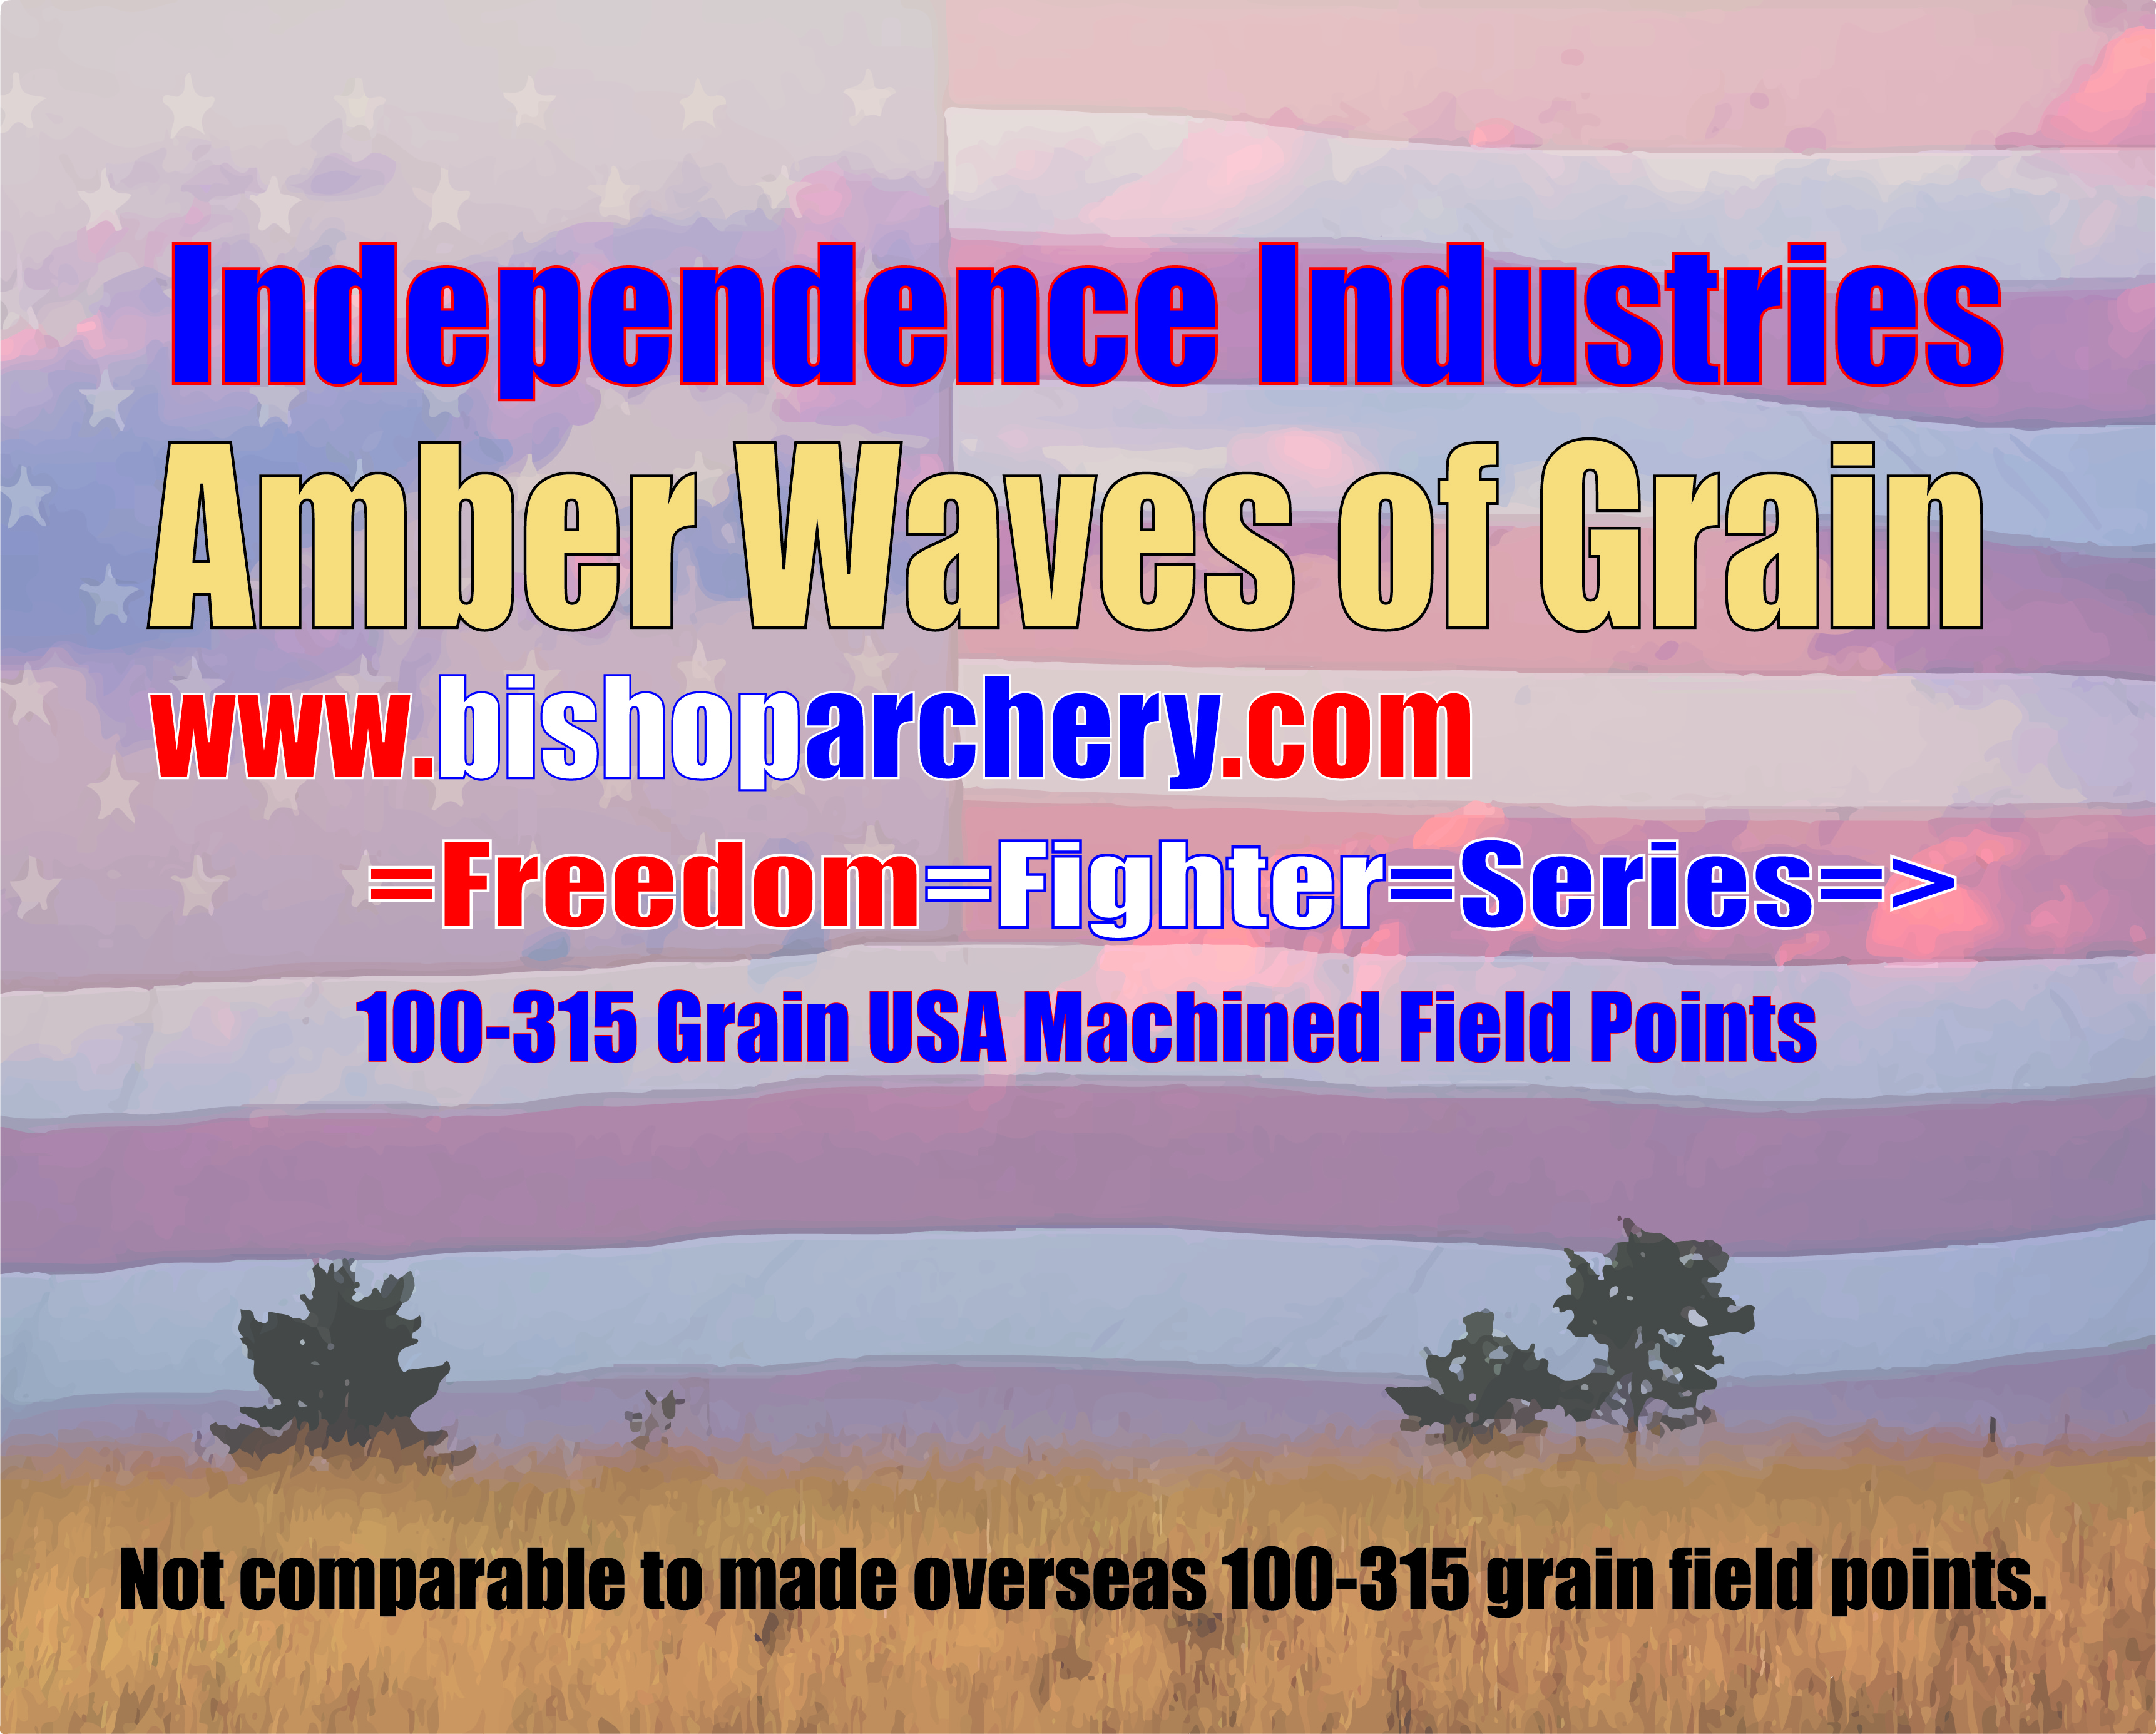 amber-waves-of-grain-field-point-independence-industries-1.jpg